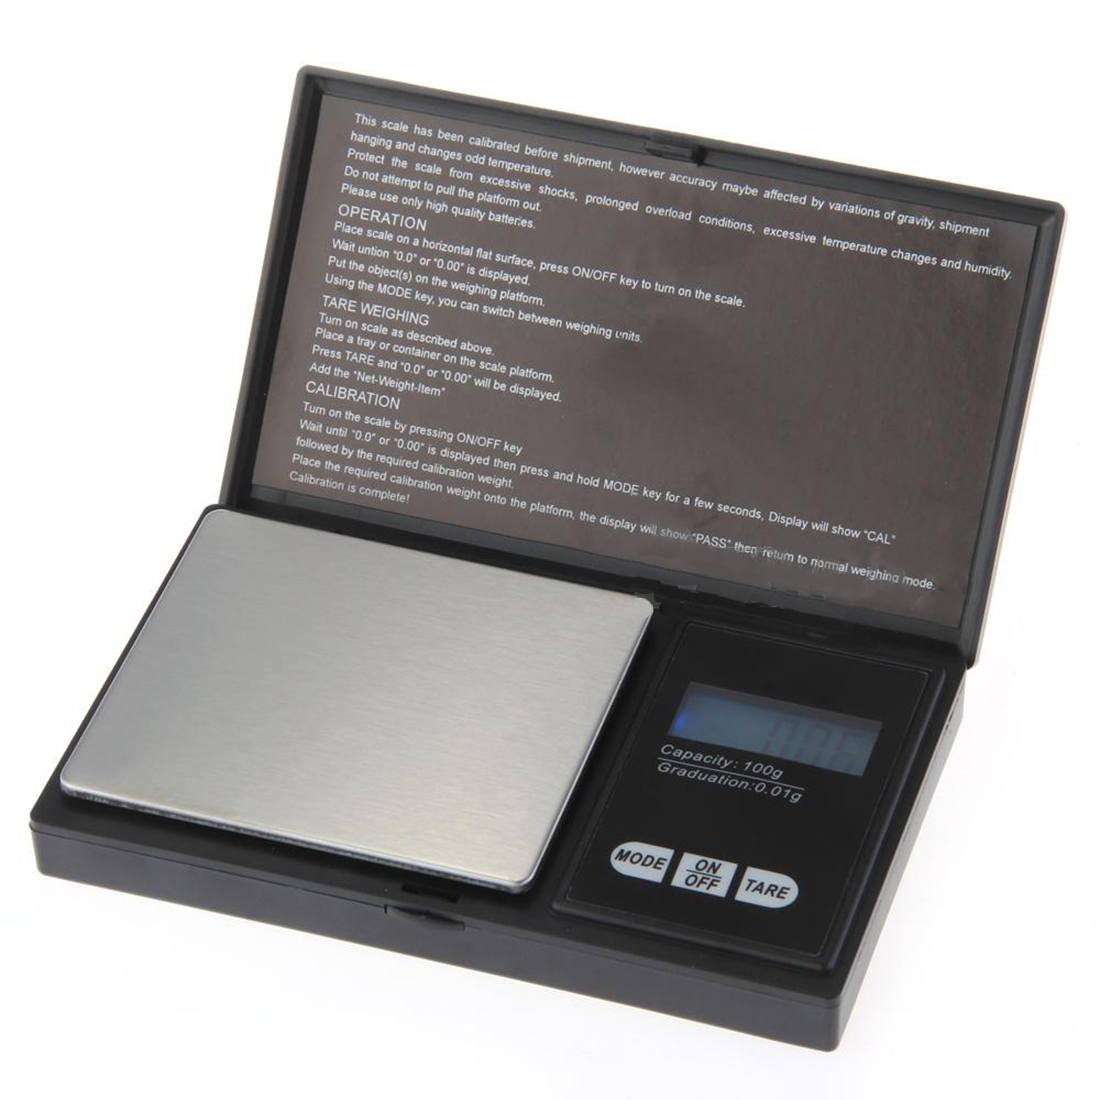 100g * 0.01g LCD Digital Pocket Scale Jewelry Gold Gram Balance Weight Scale Pocket Electronic Scales lcd digital jewelry scales 500g 0 1g electronic scale precision portable pocket weight balance kitchen gram scale